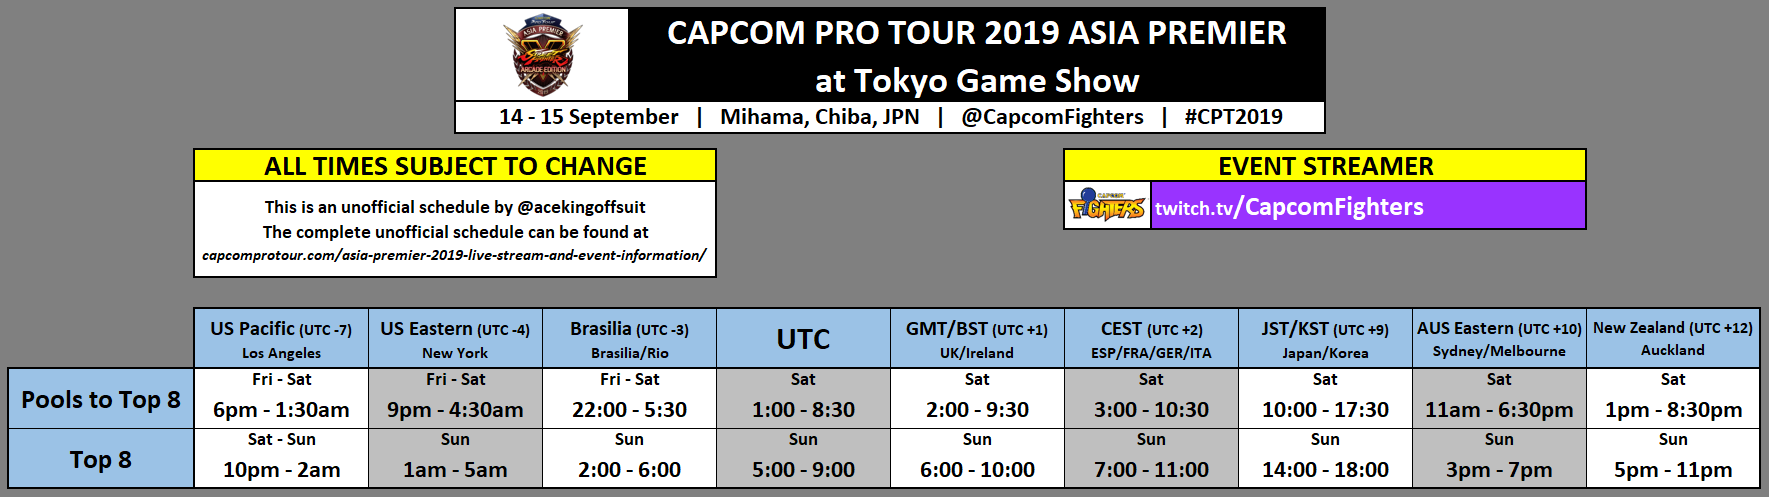 Capcom Pro Tour 2019 Asia Premier Event Schedule 1 out of 1 image gallery